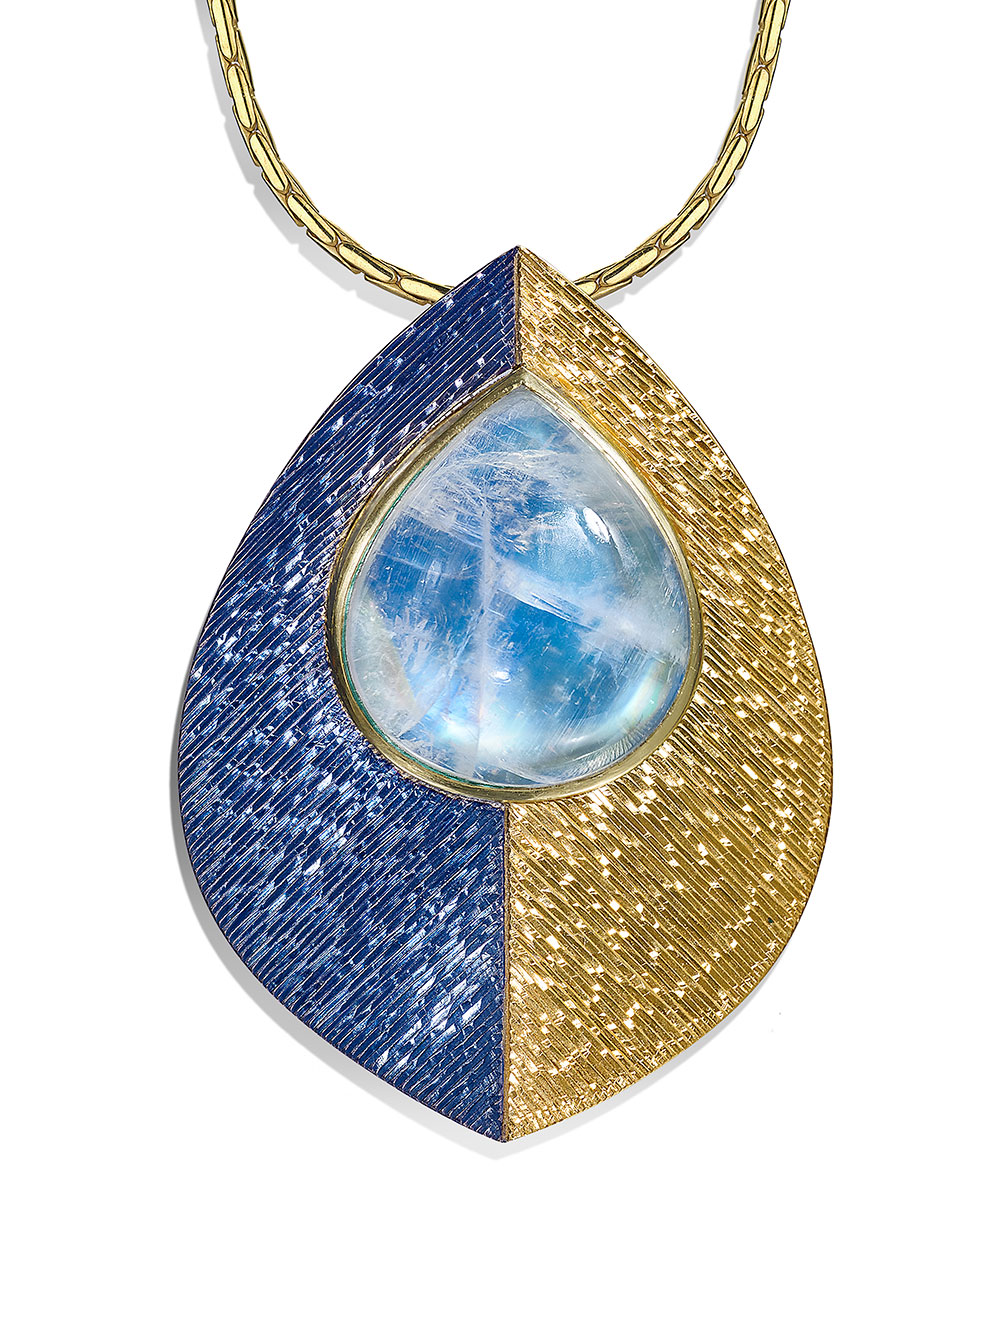 "<a href=""/node/269"">""DROP OF MOONLIGHT""  Silver and 18ct gold, Gilding and Rhodium plate / Hand Engraved / Set with drop cabouchon Moonstone  photo : Simon B Armitt 2017</a>"